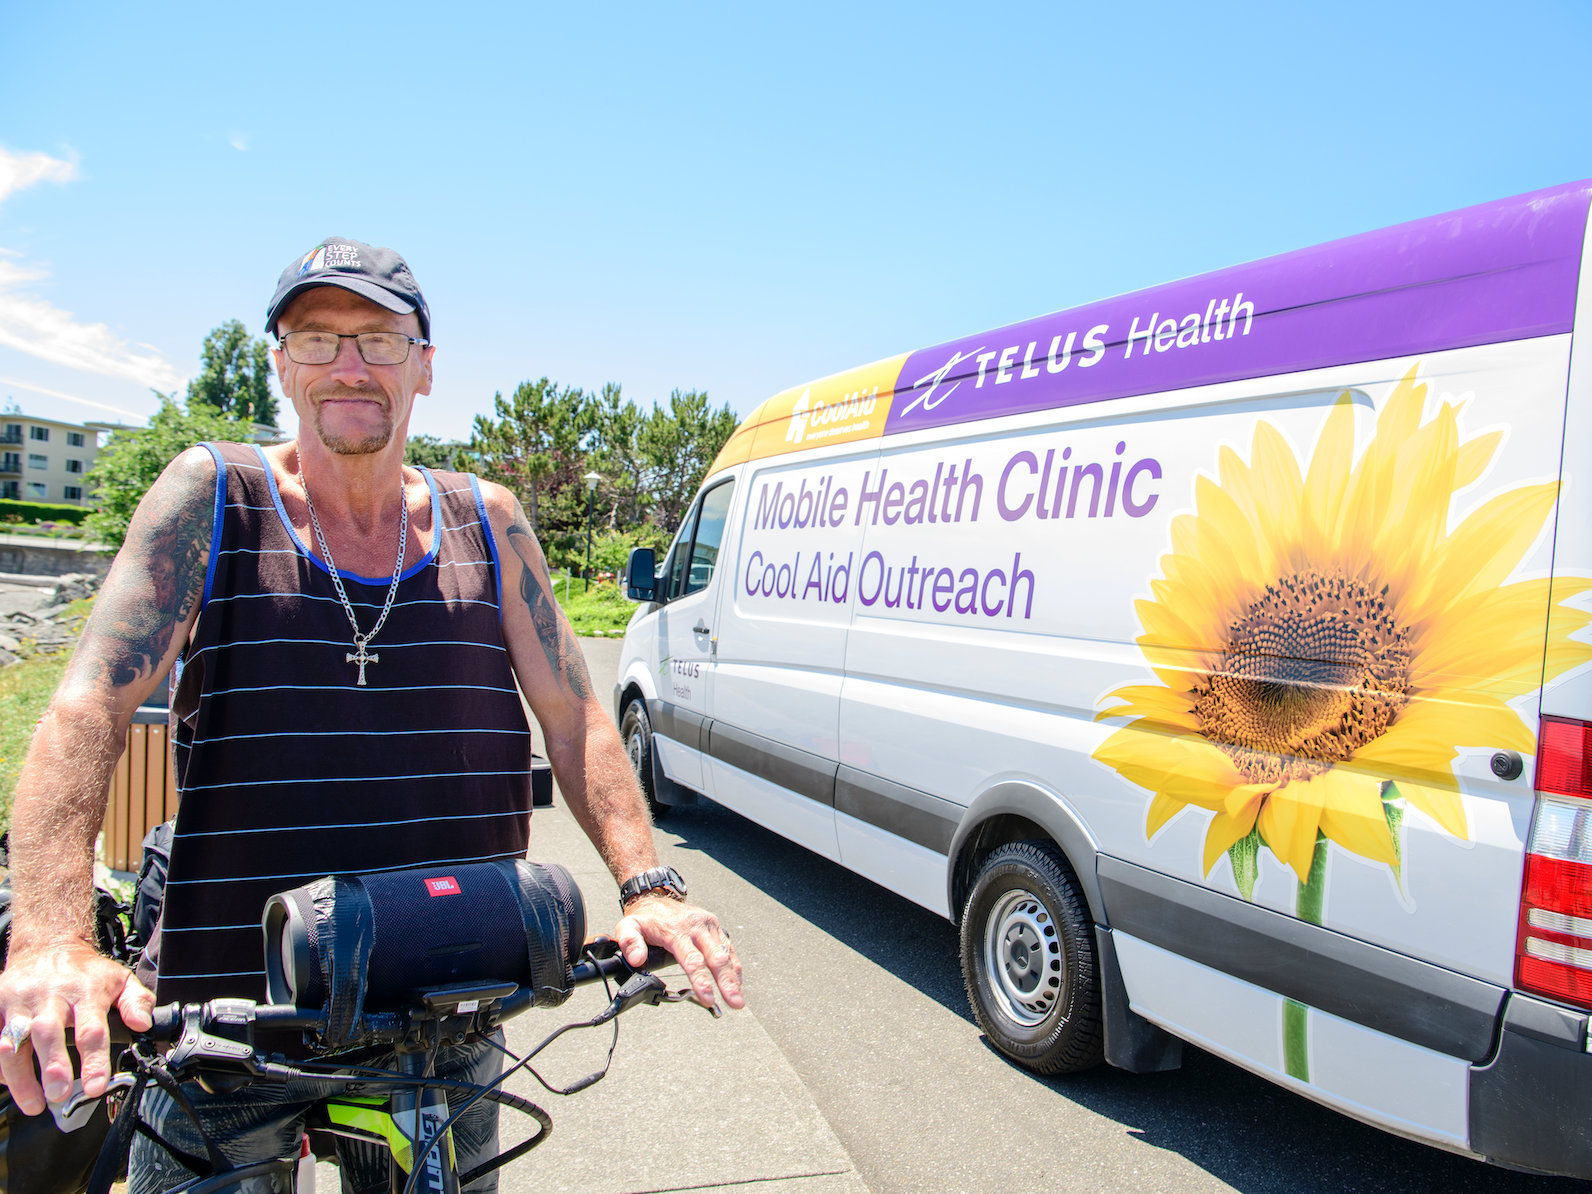 Garry standing in front of the TELUs Health/Cool Aid Mobile Health Clinic van